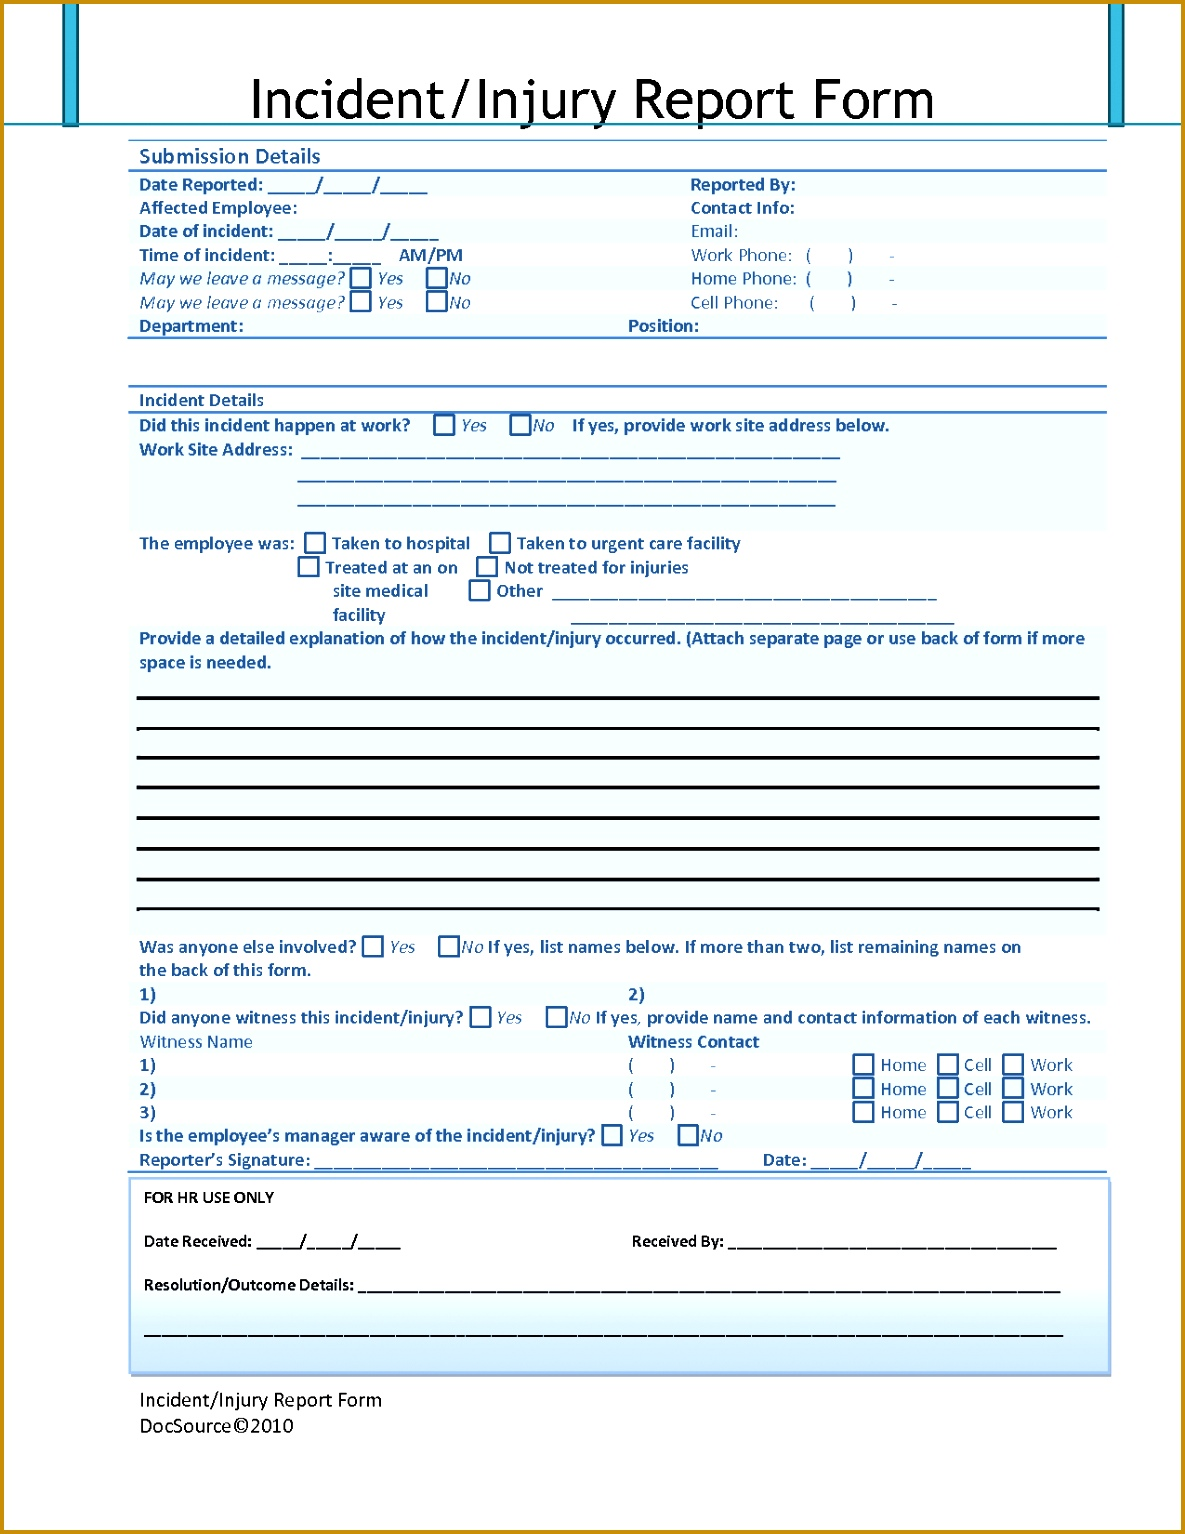 4 Osha Incident Report Form Template FabTemplatez FabTemplatez Osha Incident  Report Form Template 38786 Injury Incident  Injury Incident Report Template